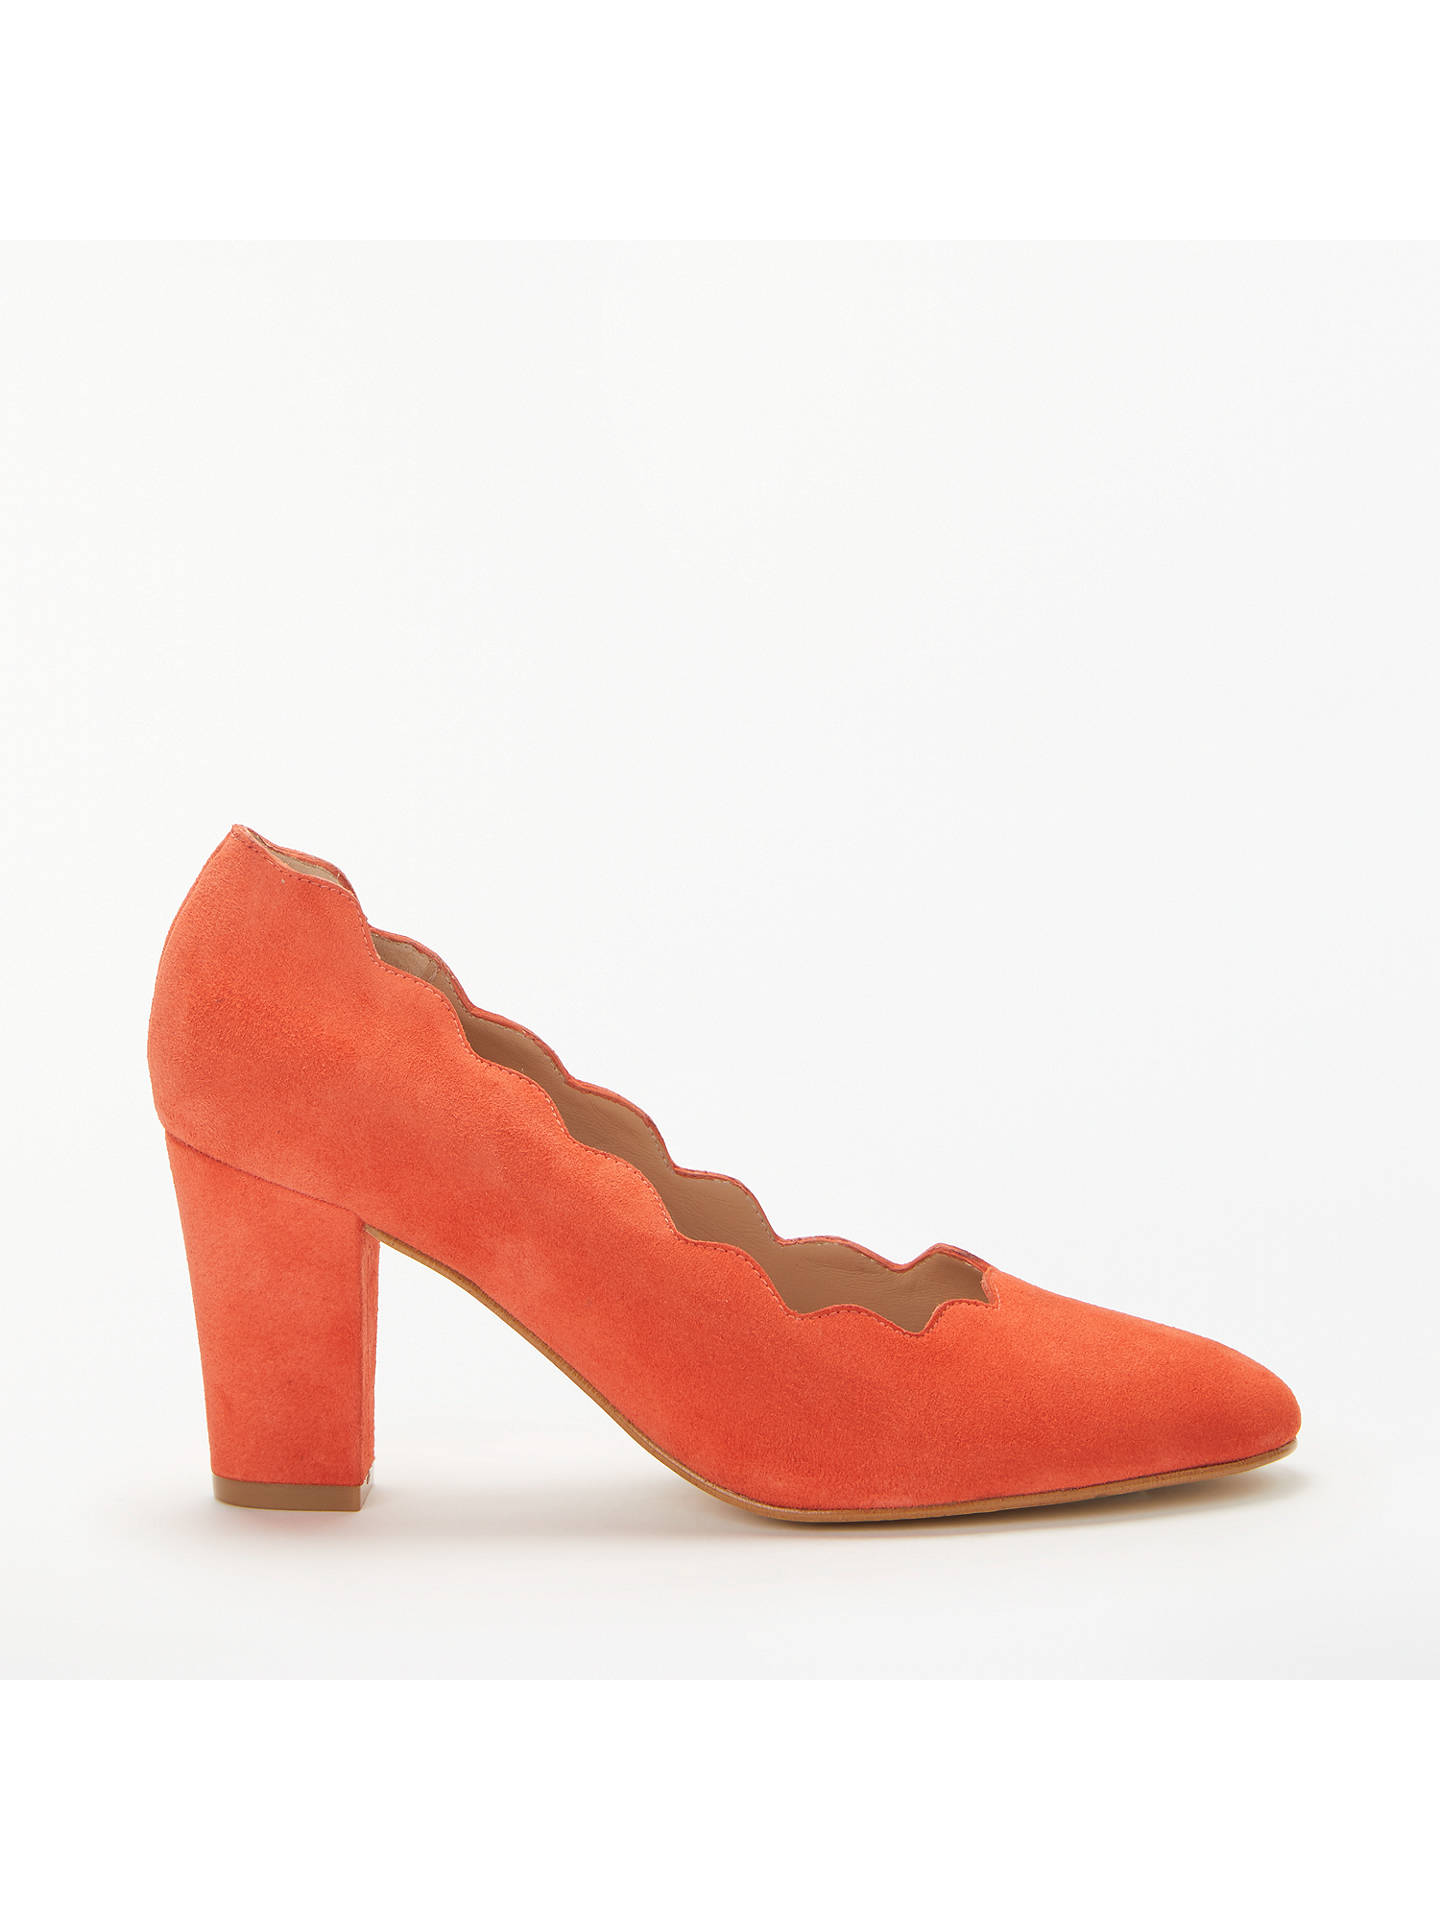 Lewis John high heels latest collection footwear forecasting to wear in summer in 2019